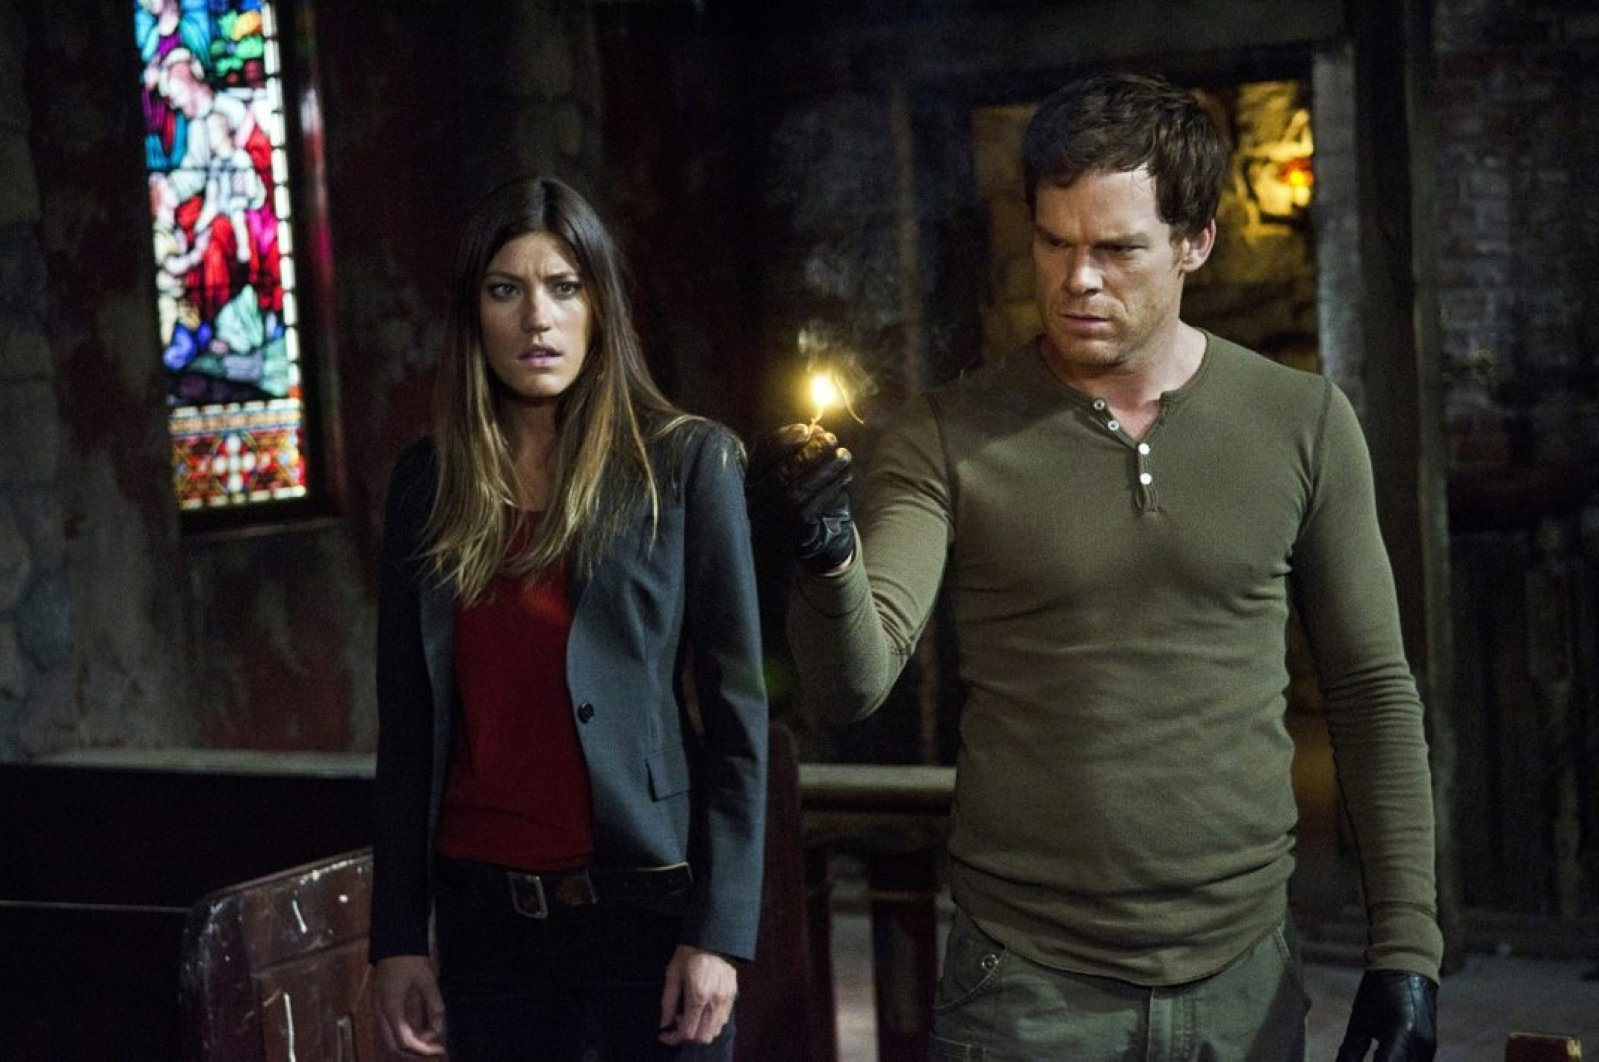 """In this publicity file photo provided by Showtime, Michael C. Hall (R), and Jennifer Carpenter are shown in a scene from """"Dexter."""" (AP Photo)"""